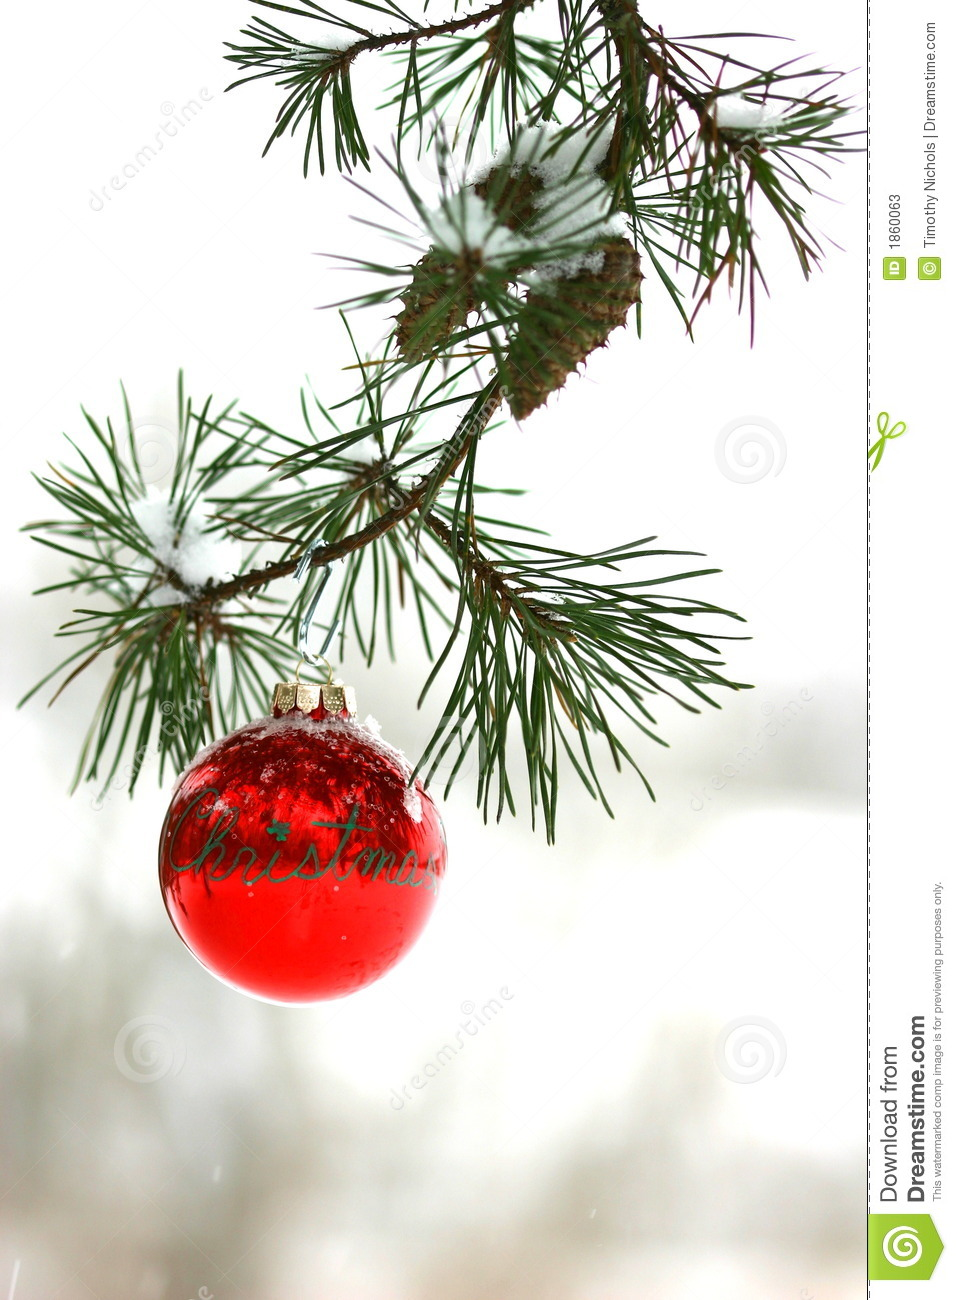 Pine Branches For Decoration Red Christmas Decoration On Snow Covered Pine Tree Outdoors Stock